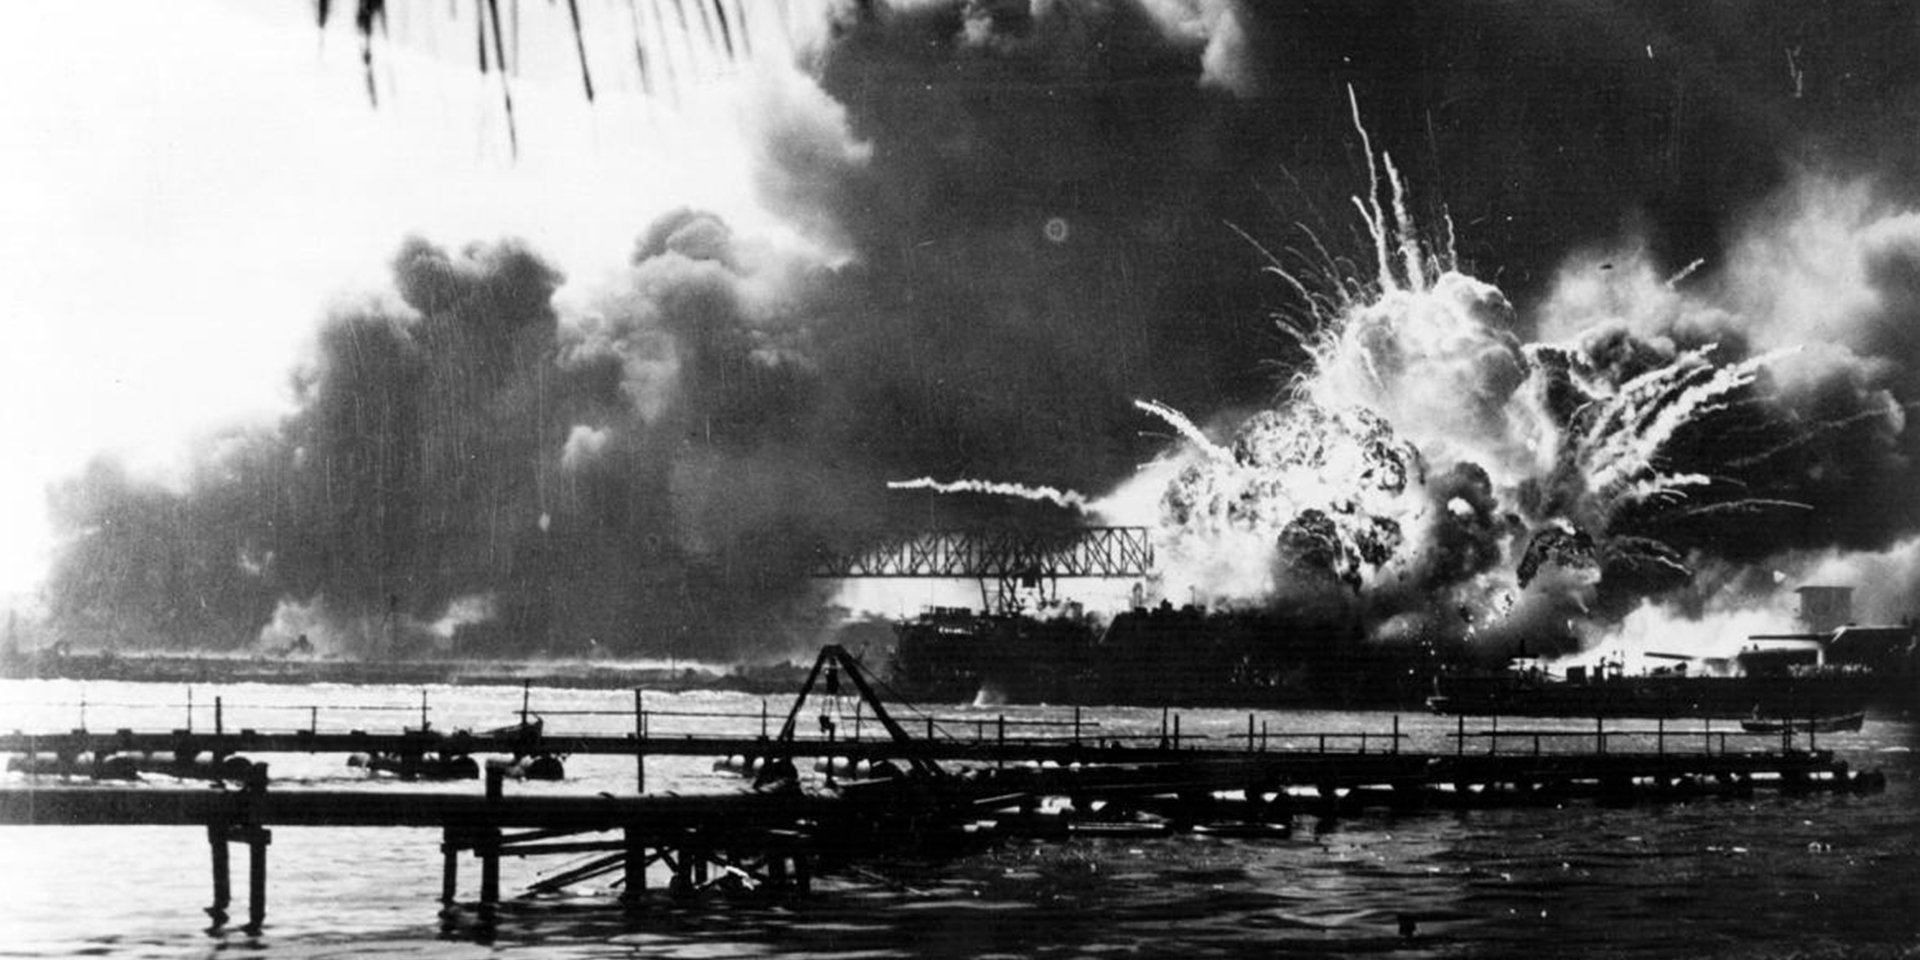 pearl harbour explosion - Old Pearl Harbor Survivor Makes Amazing Appearance, Wins The Hearts Of Over 54,000 Audience